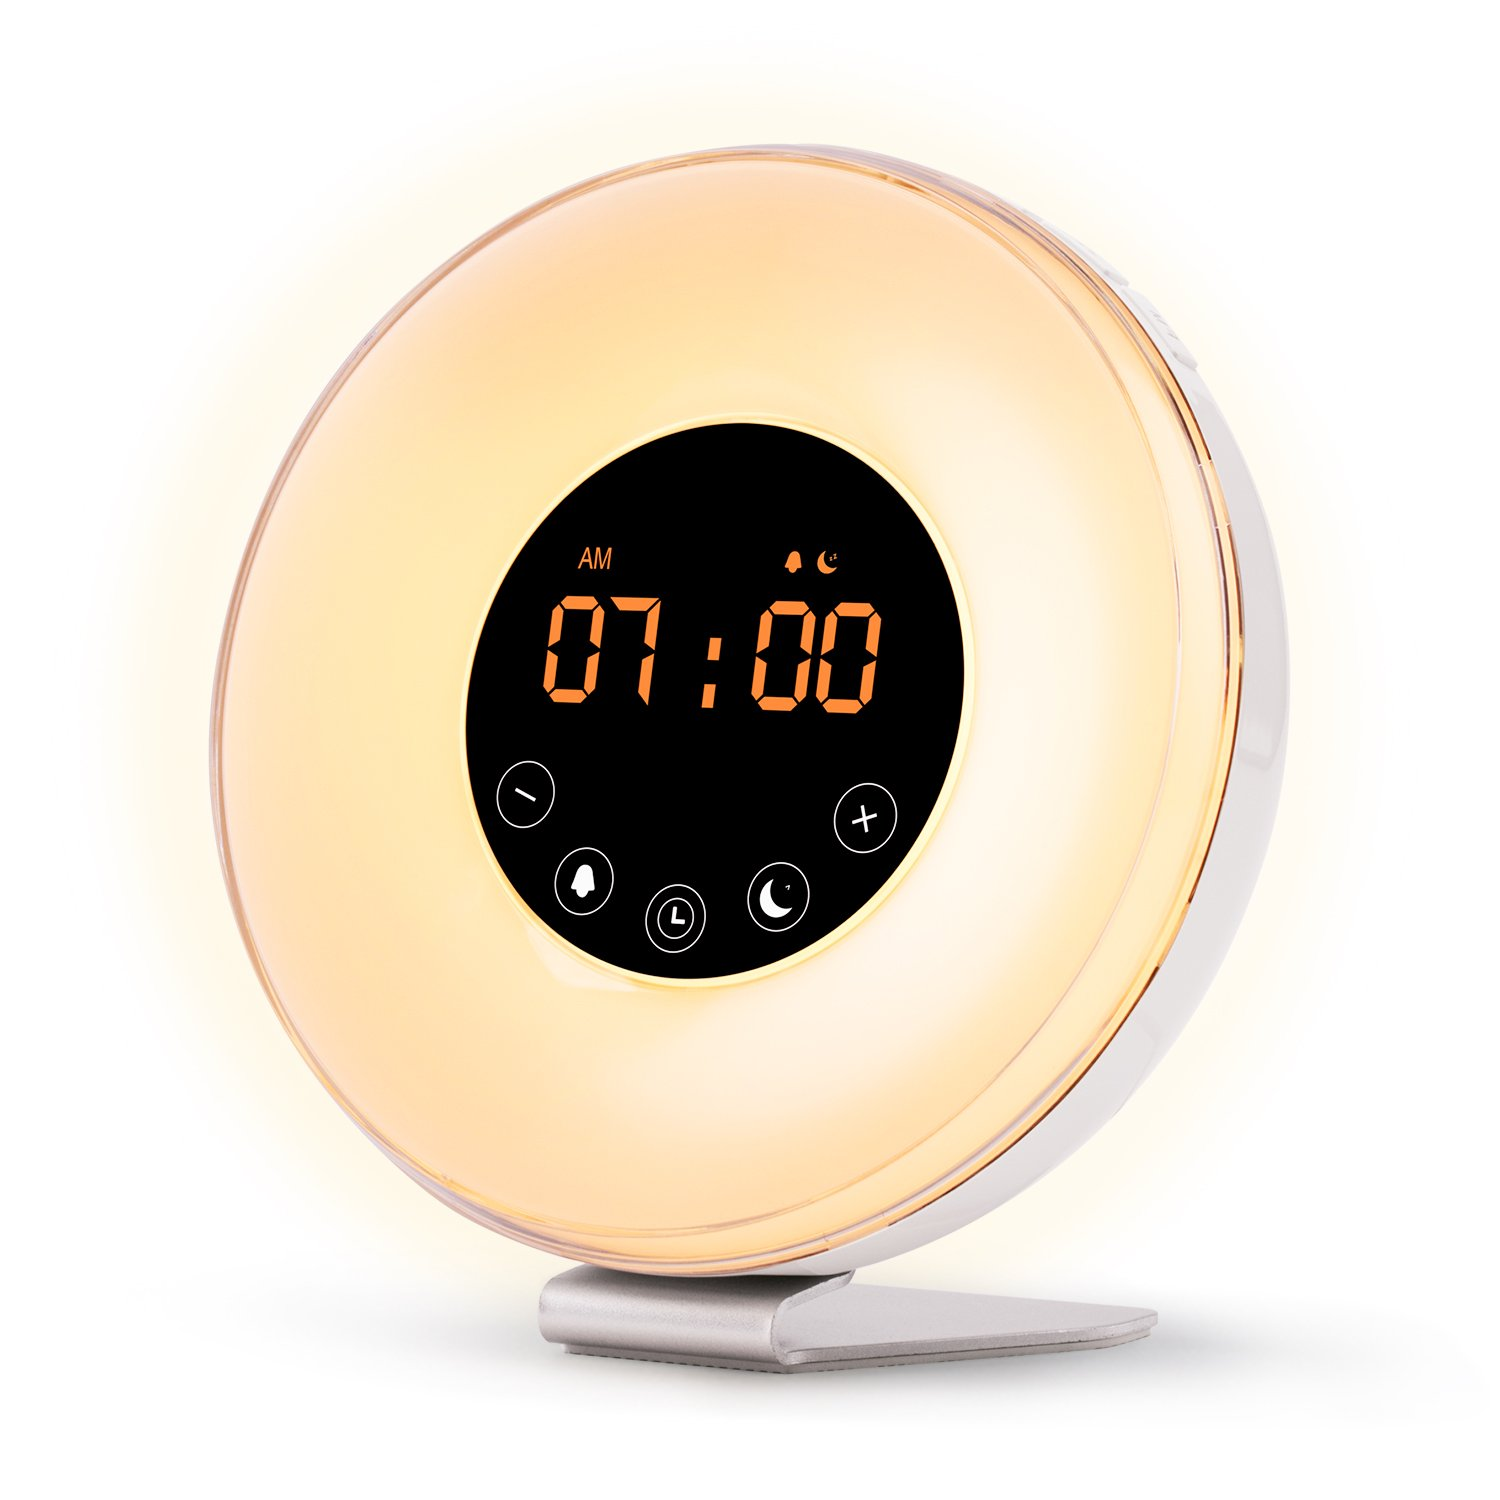 Sunrise Alarm Clock Wake up Light FM Radio Clock Night Light Heavy Sleepers & Kids - 7 Adjustable Colors - Sunrise Sunset Simulation Touch Control